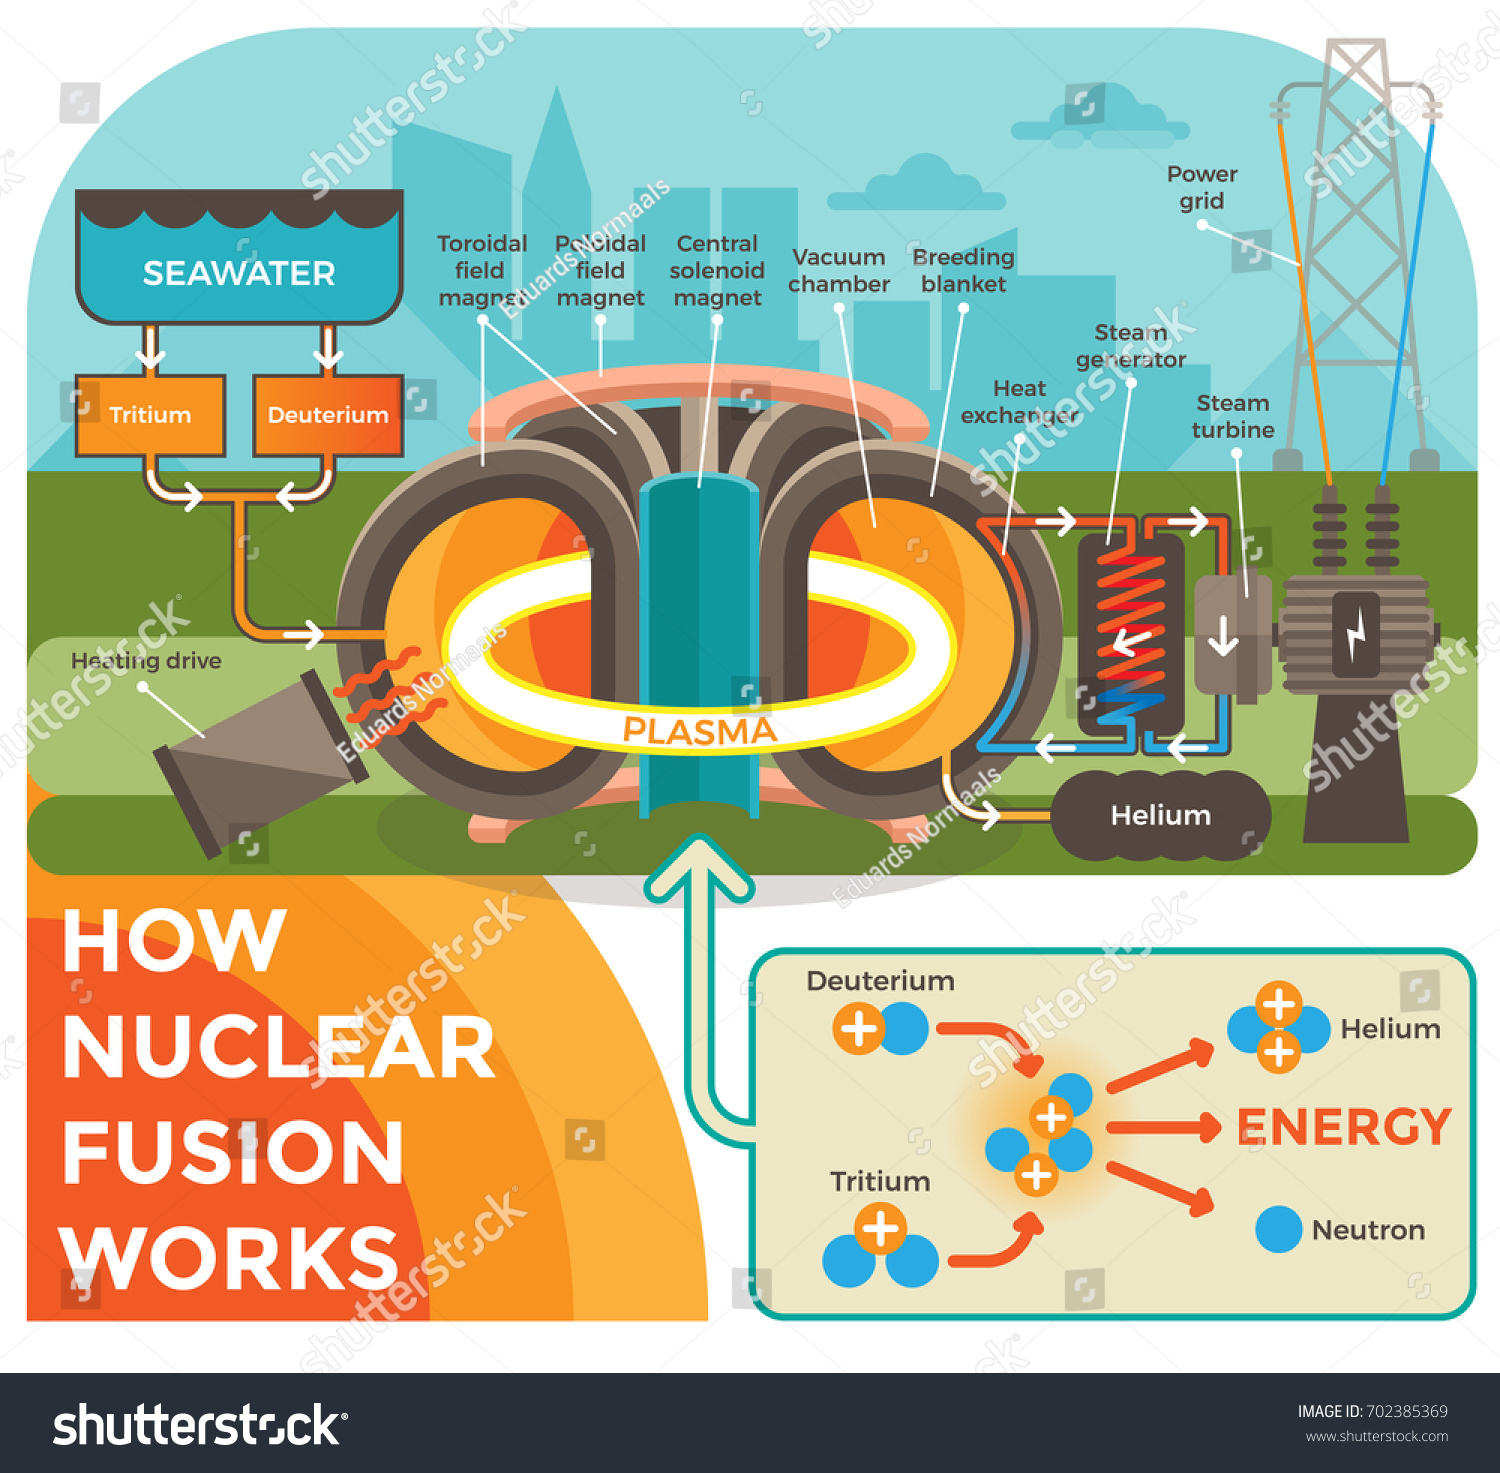 How Nuclear Fusion Works illustration Background Stock Vector